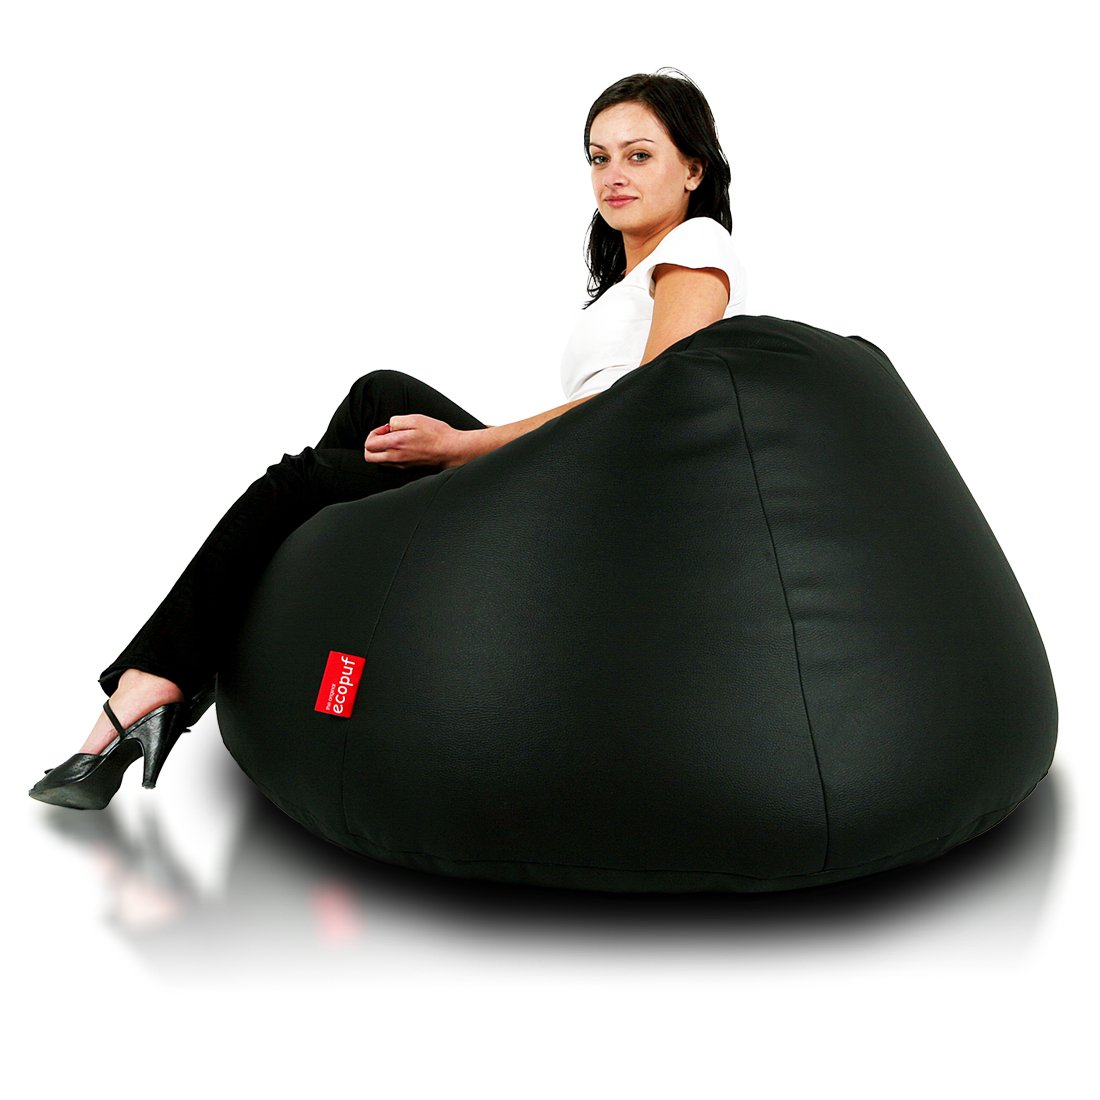 Turbo BeanBags Relax Bean Bag Chair, Large, Black